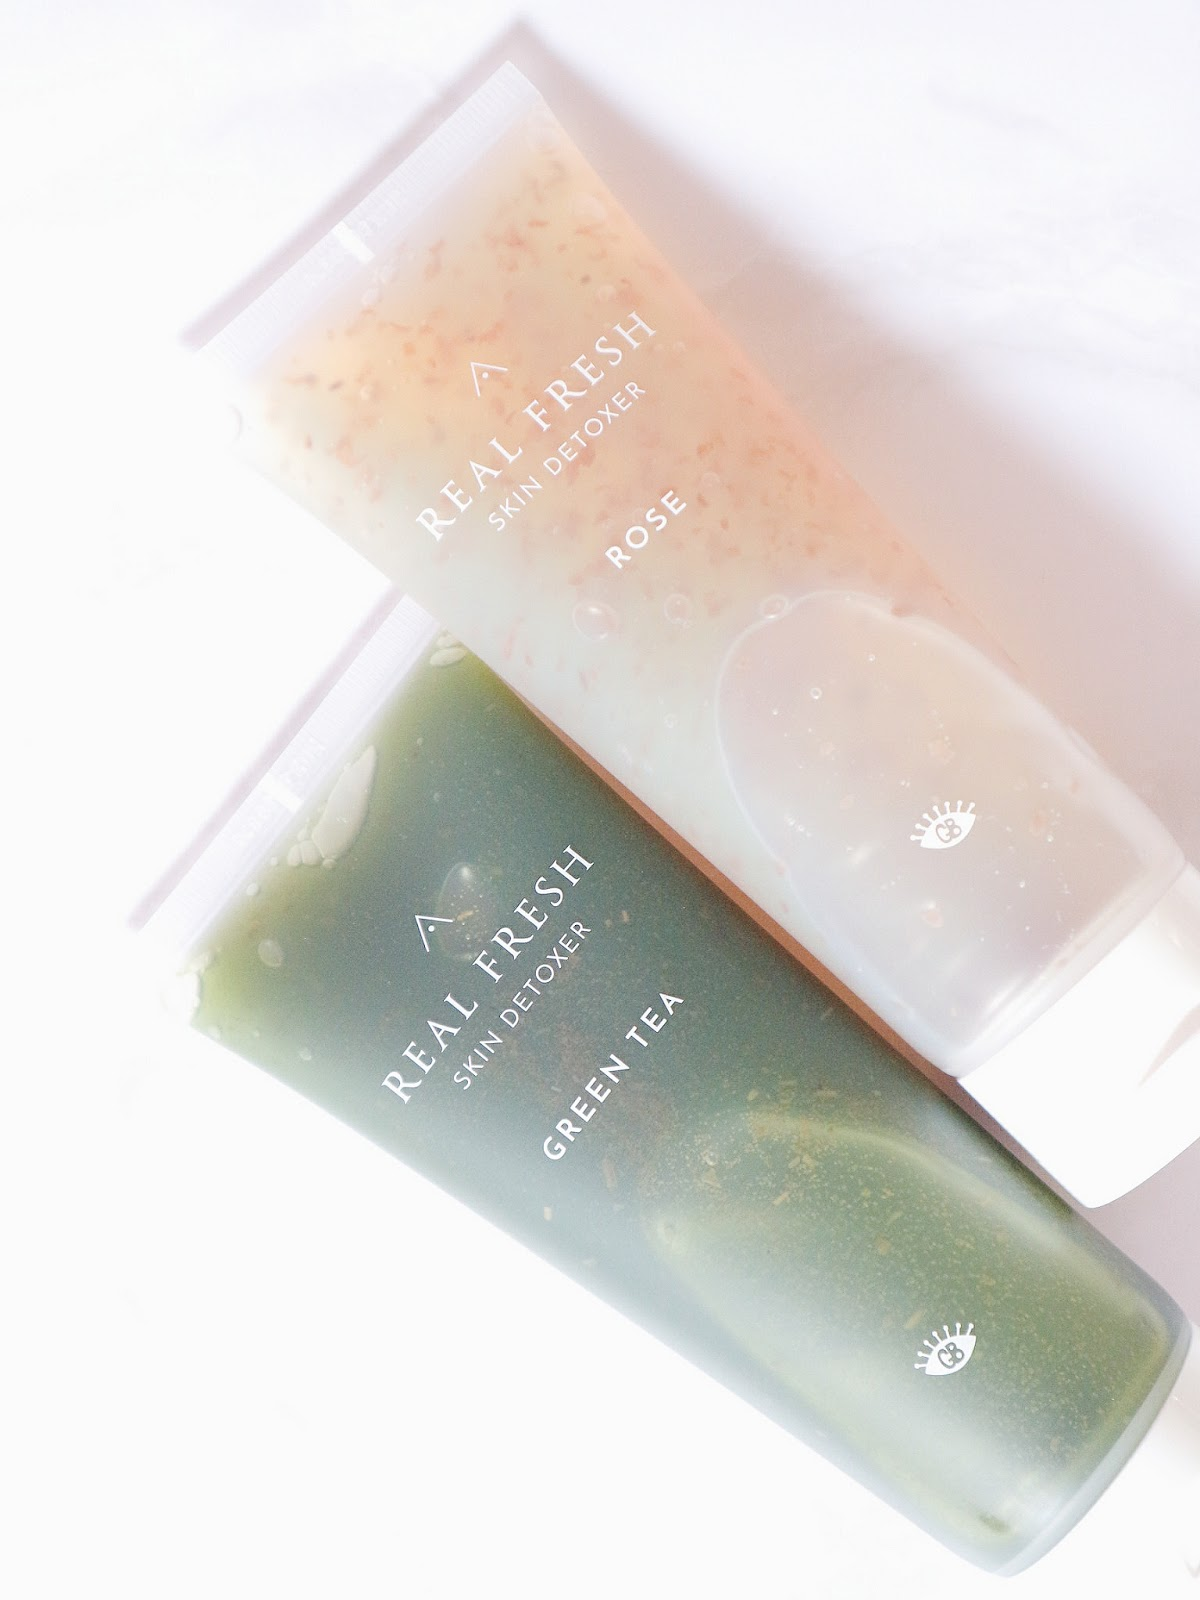 Althea Get it Beauty Real Fresh Skin Detoxer